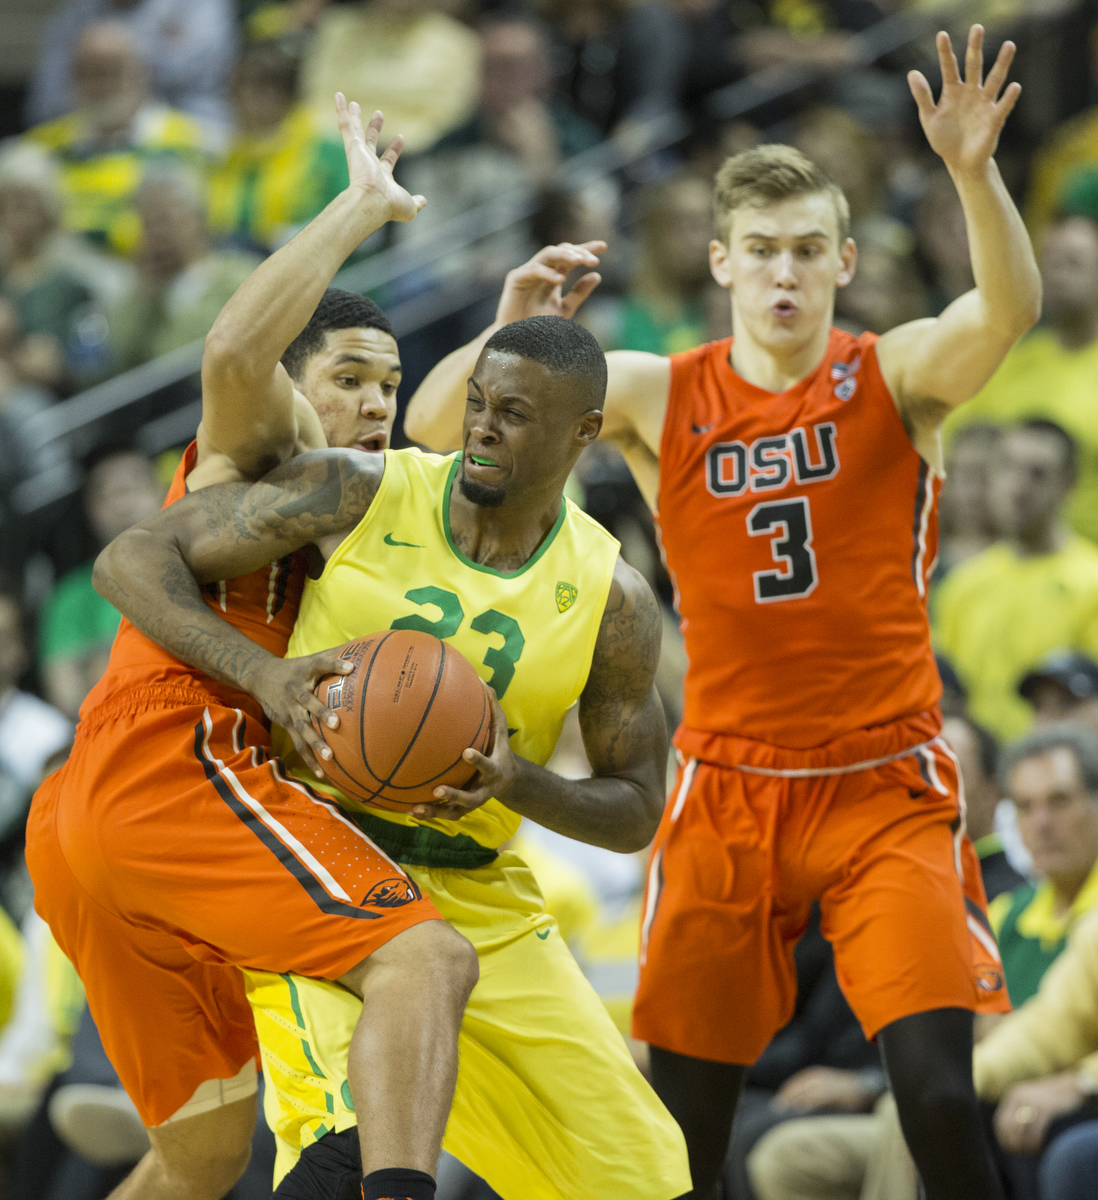 Oregon's Elgin Cook (23) looks to pass out of a half court trap by Oregon State's Tres Tinkle (3) and Malcolm Duvivier (11). After opening up a huge lead in the first half, the Ducks breezed to a 91-81 win over Oregon State on Saturday night in front of a sold out crowd at Matthew Knight Arena. With the victory, the Ducks advance to 21-6 on the year and 9-4 in conference play. Eric Cech, Oregon News Lab